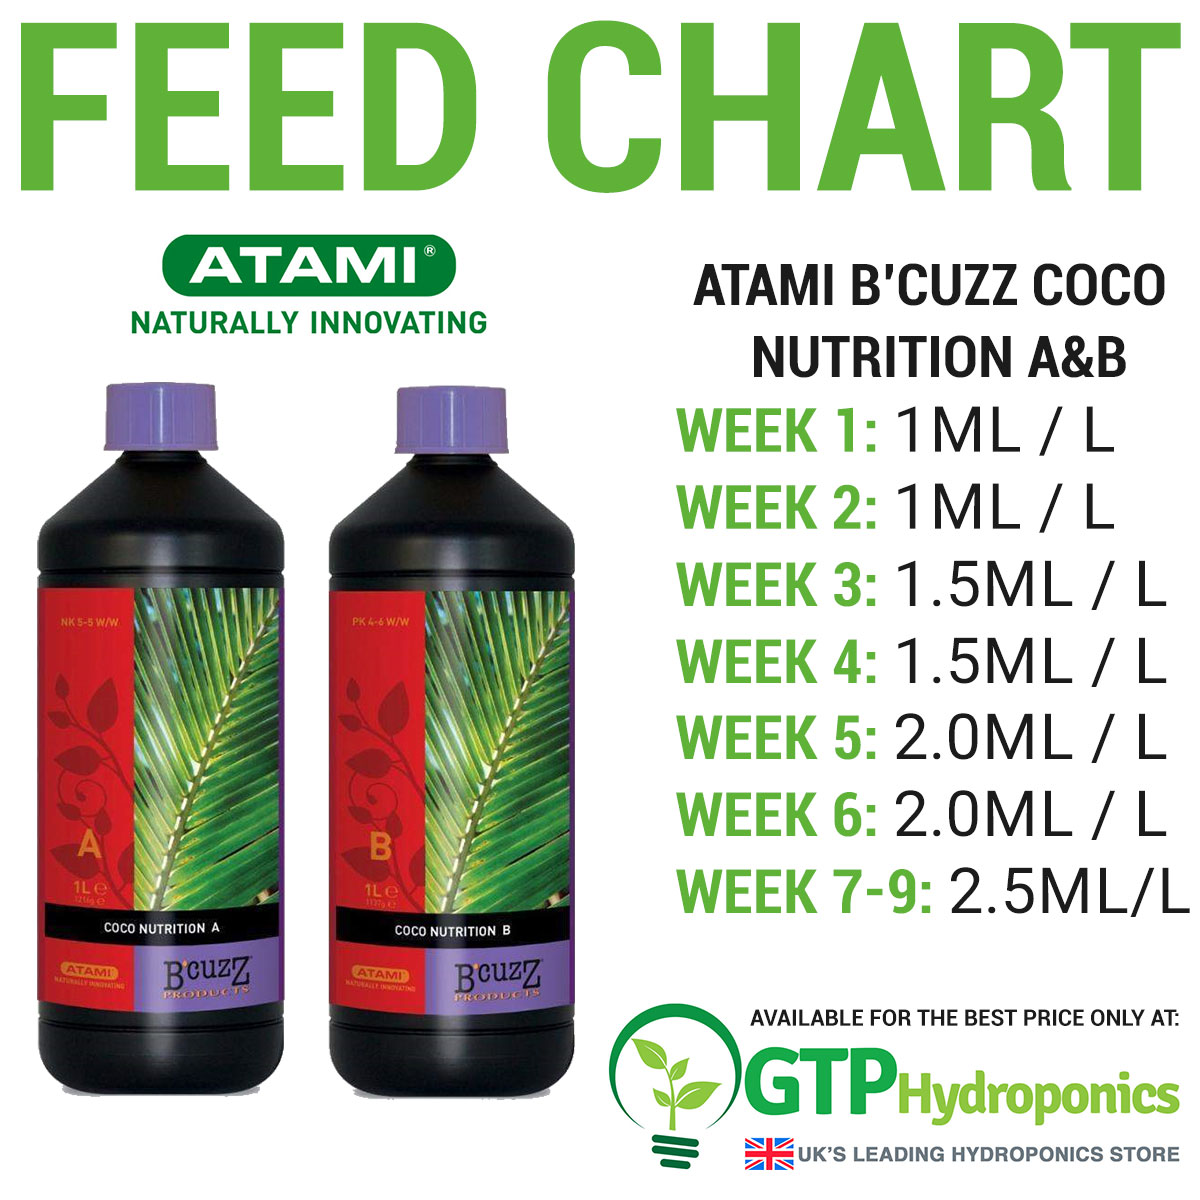 Atami Bcuzz Coco Nutrition AB Feedchart